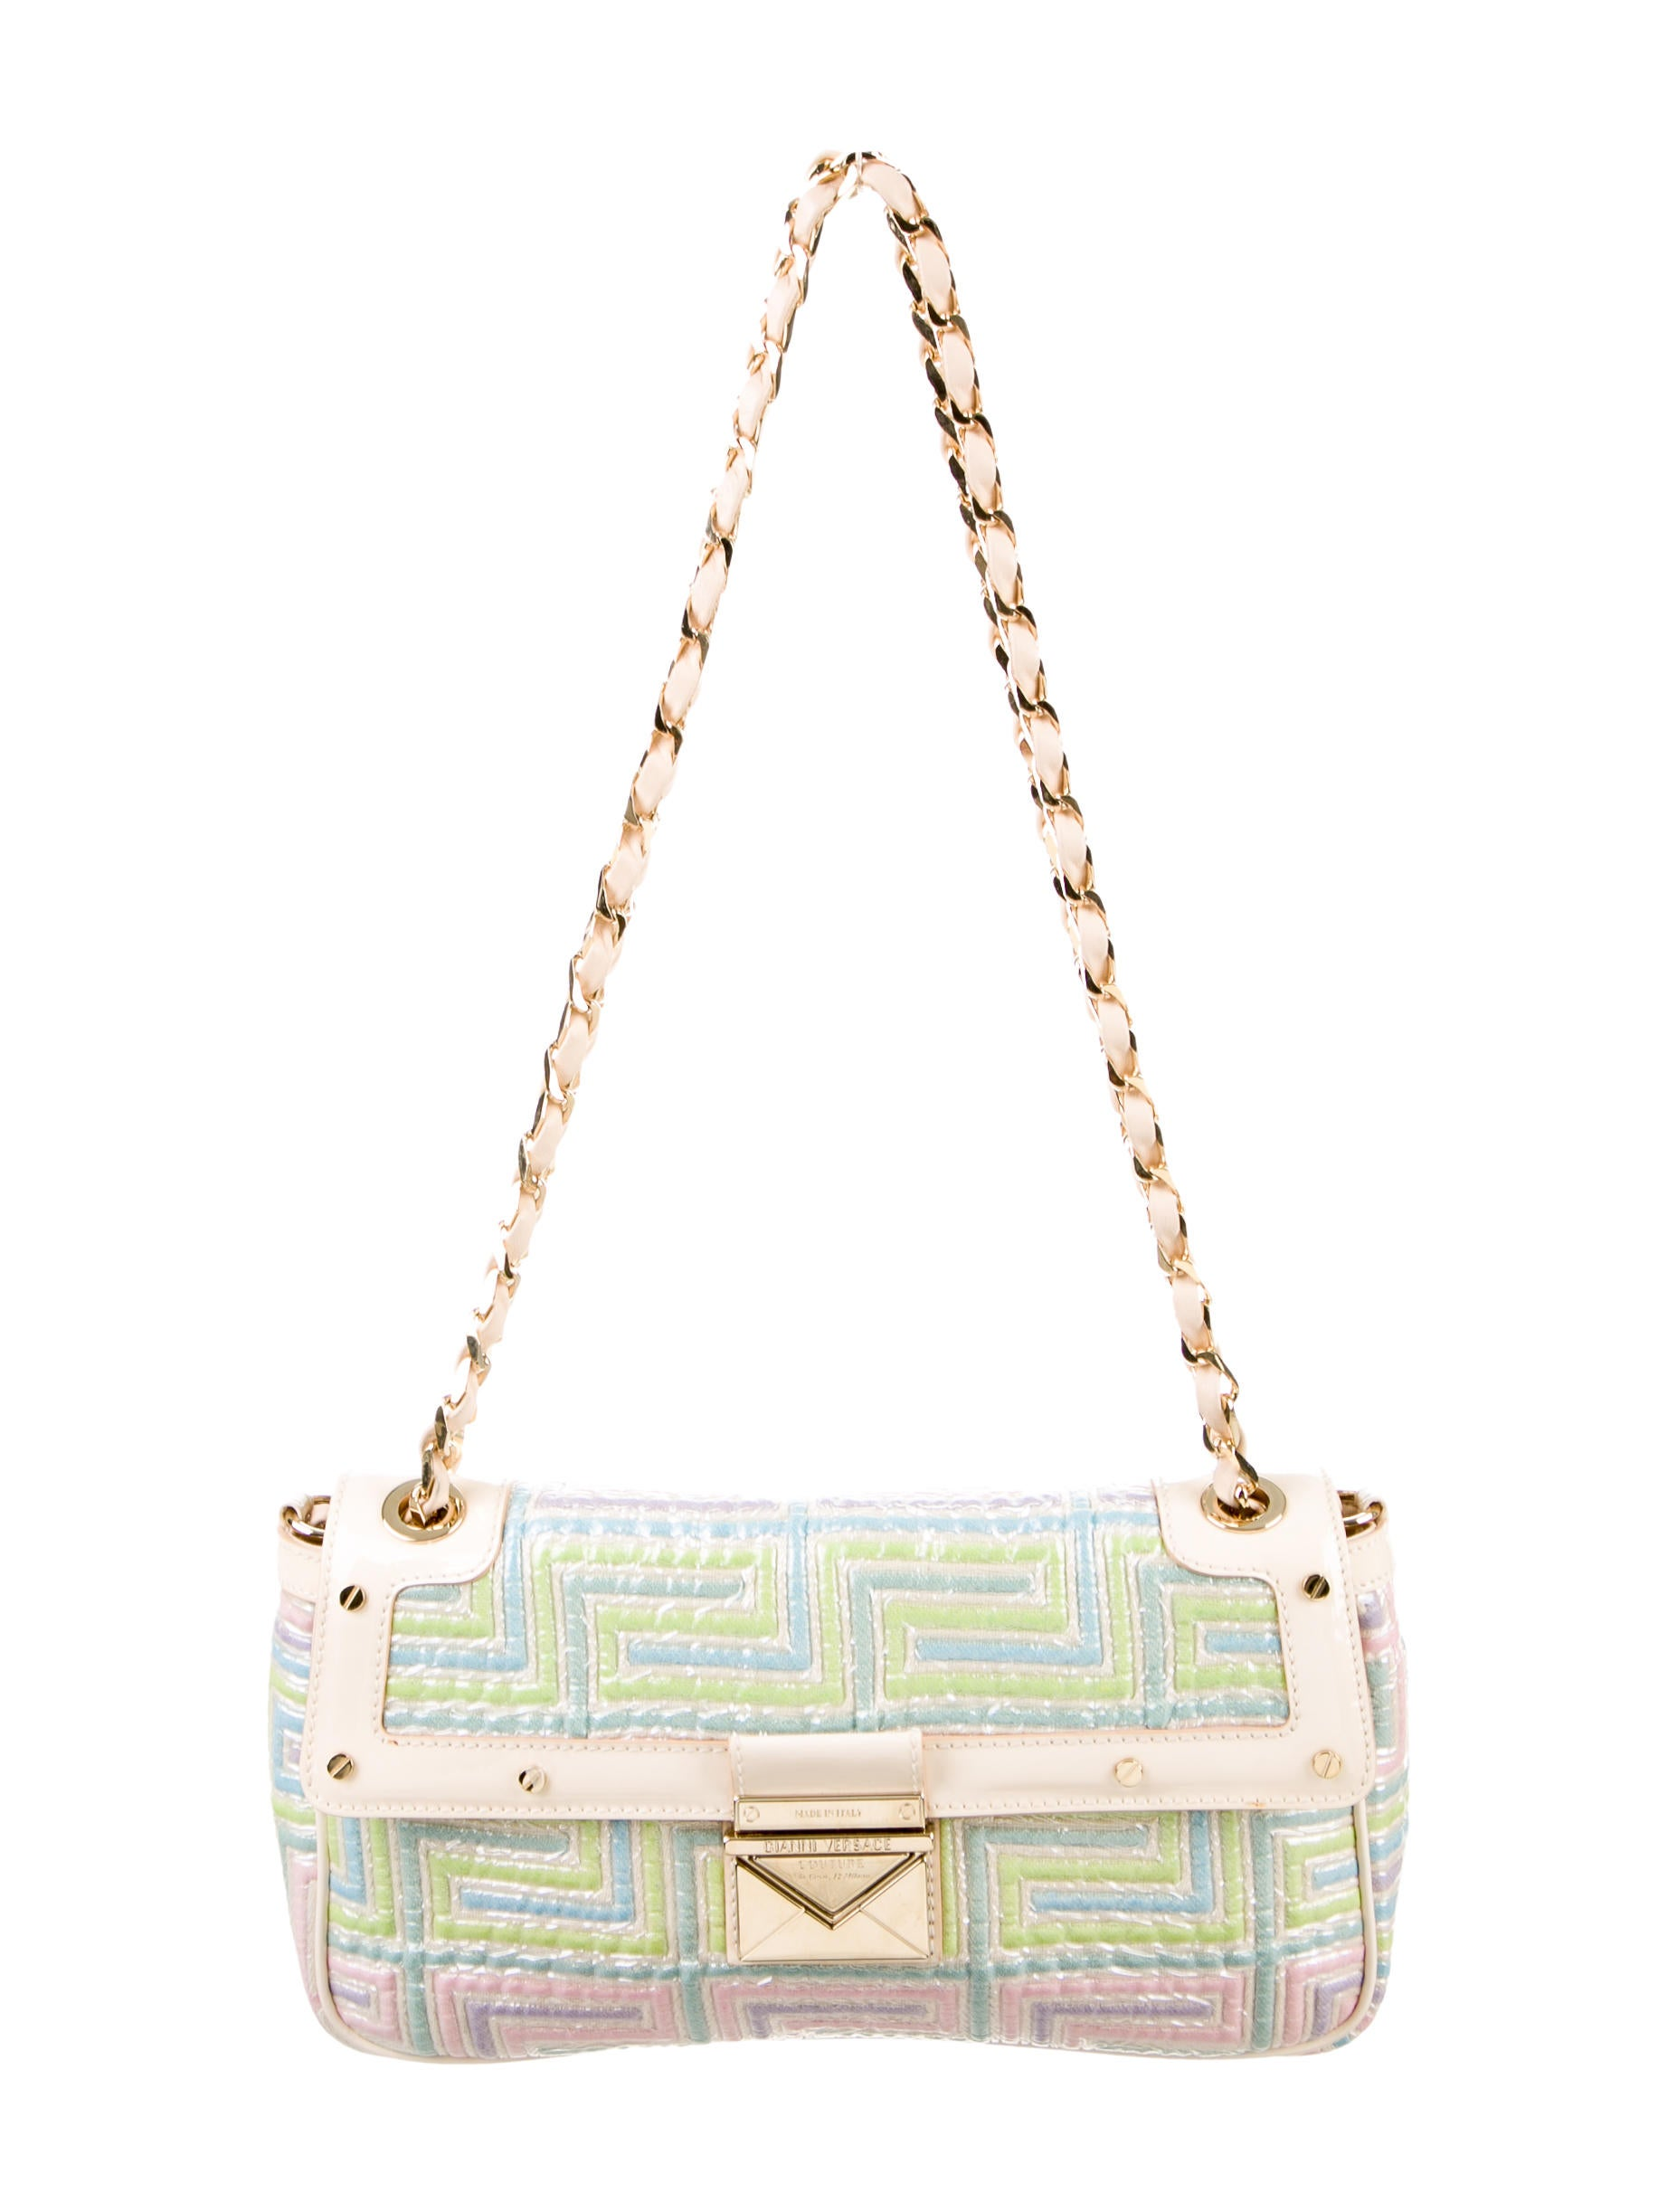 31e198ff5b Gianni Versace Couture Quilted Shoulder Bag - Handbags - GVE20299 ...